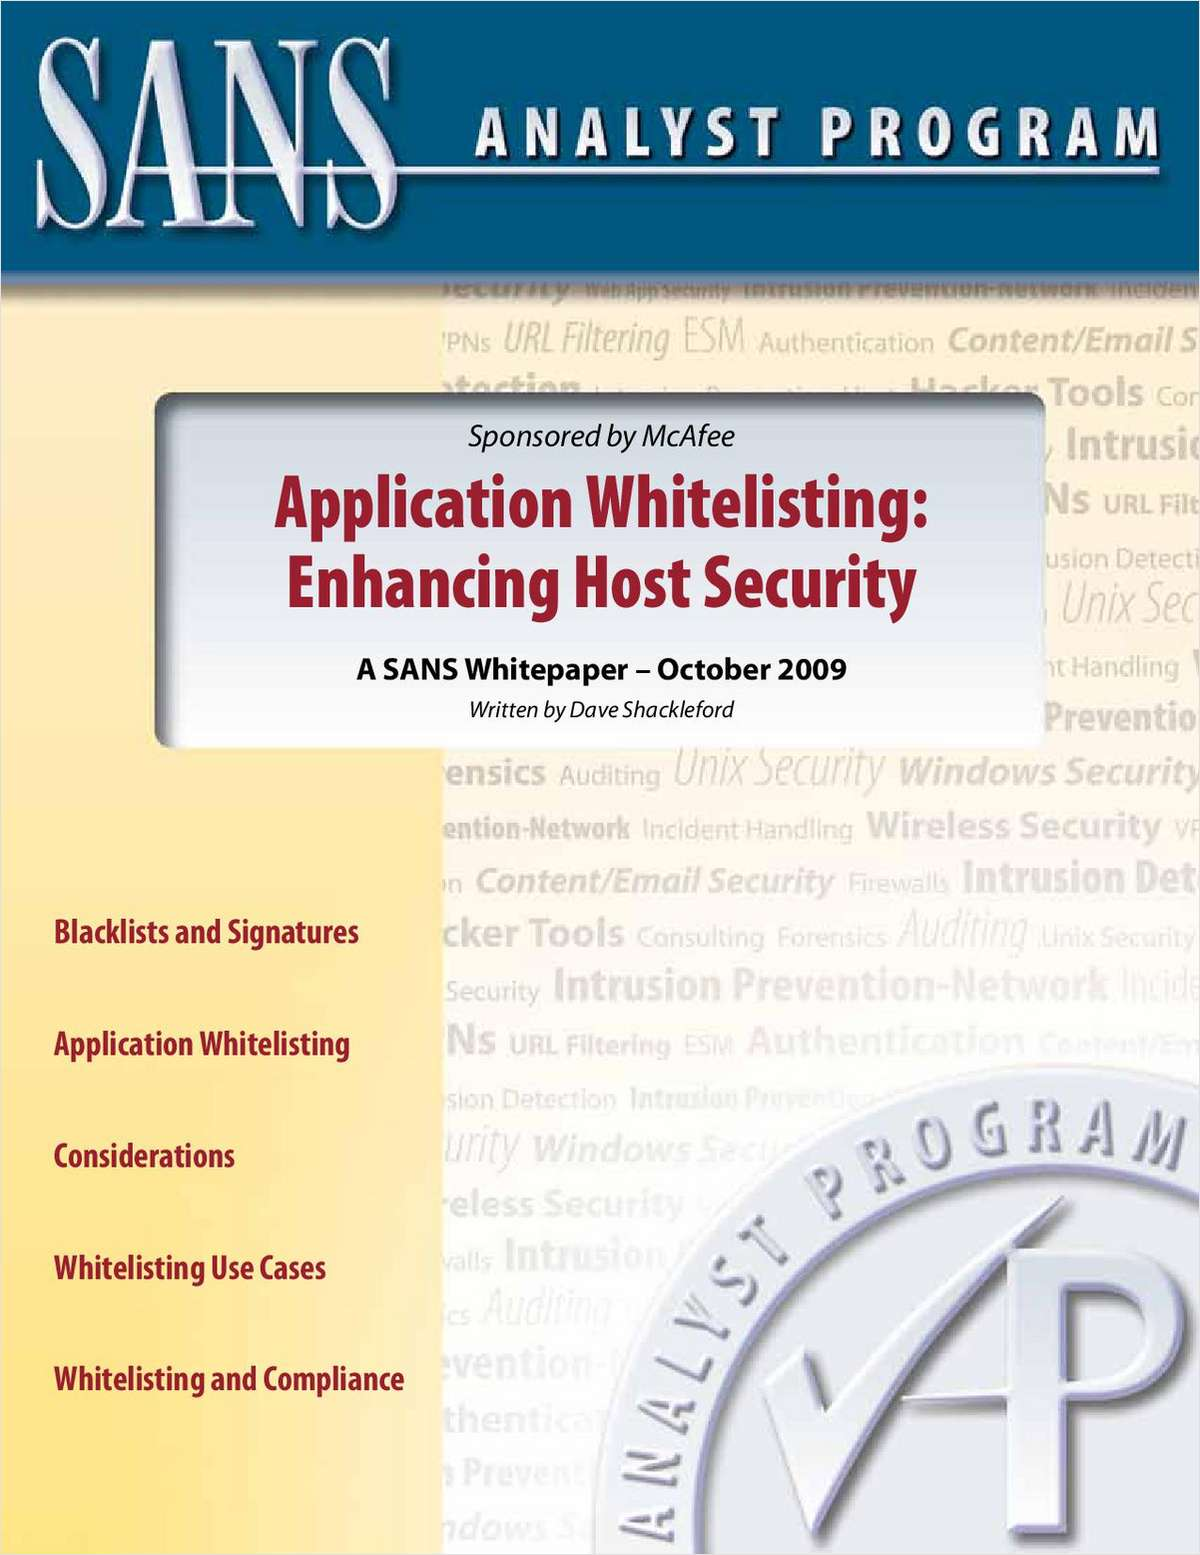 Understanding Application Whitelisting